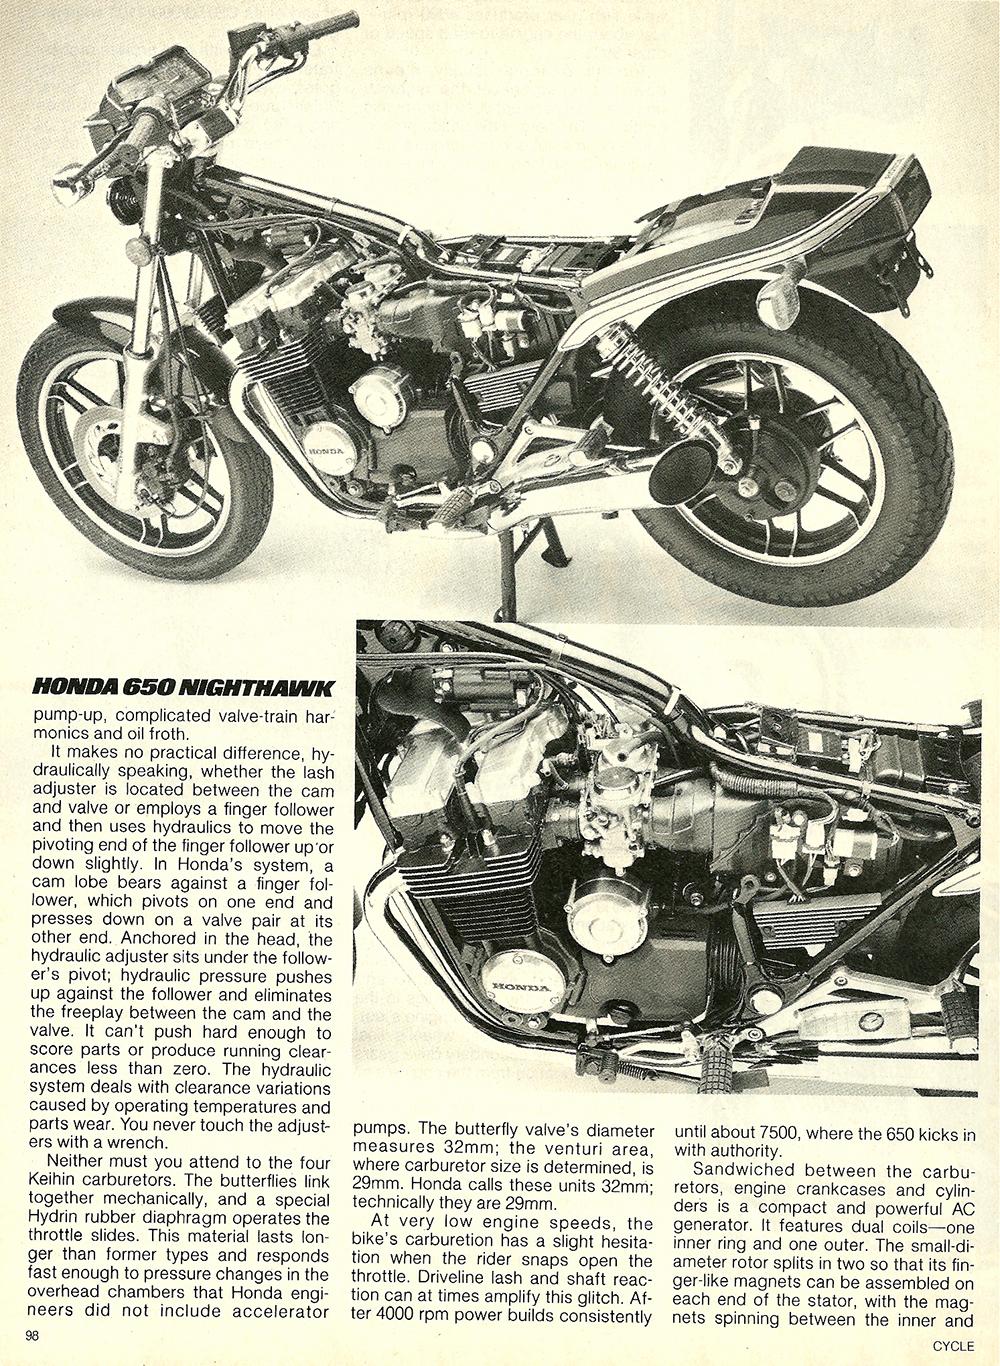 1983 Honda CB650SC Nighthawk road test 5.jpg